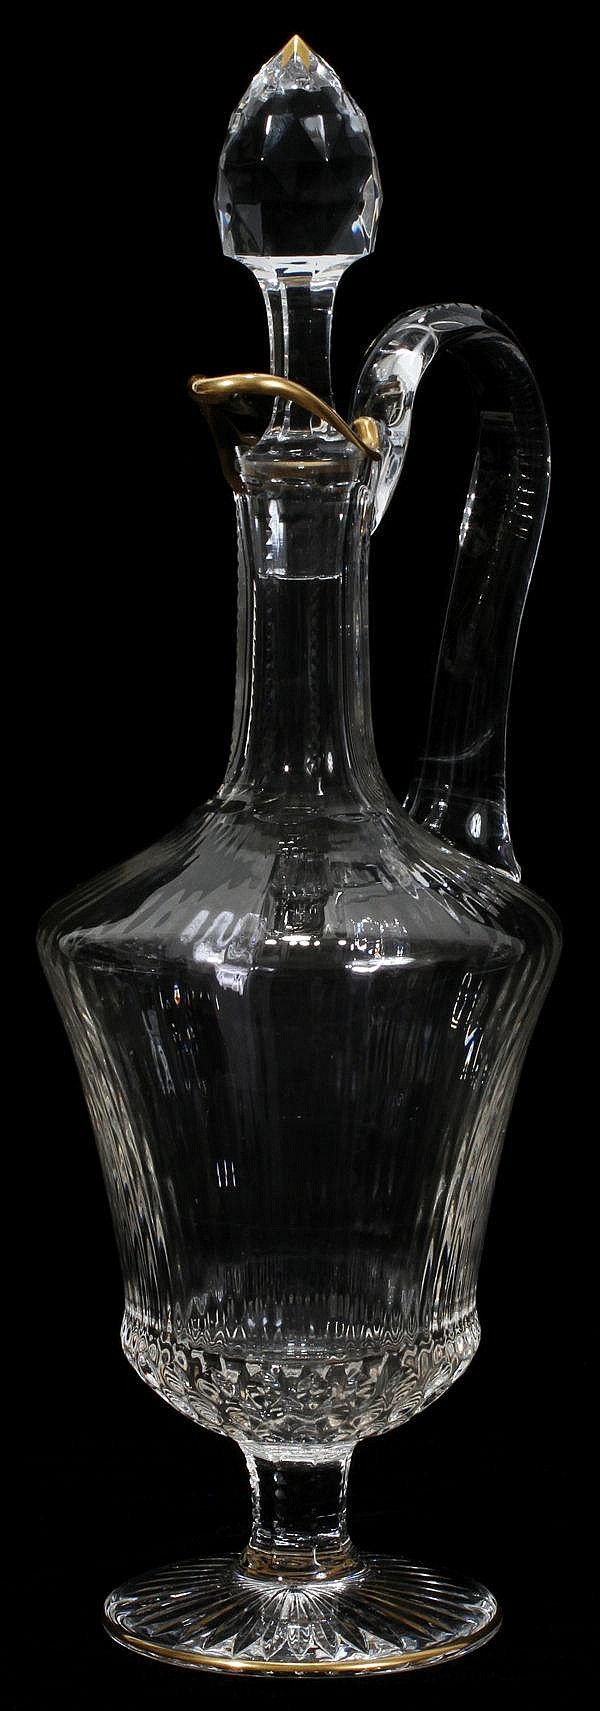 ST. LOUIS CUT CRYSTAL WINE DECANTER, H 15